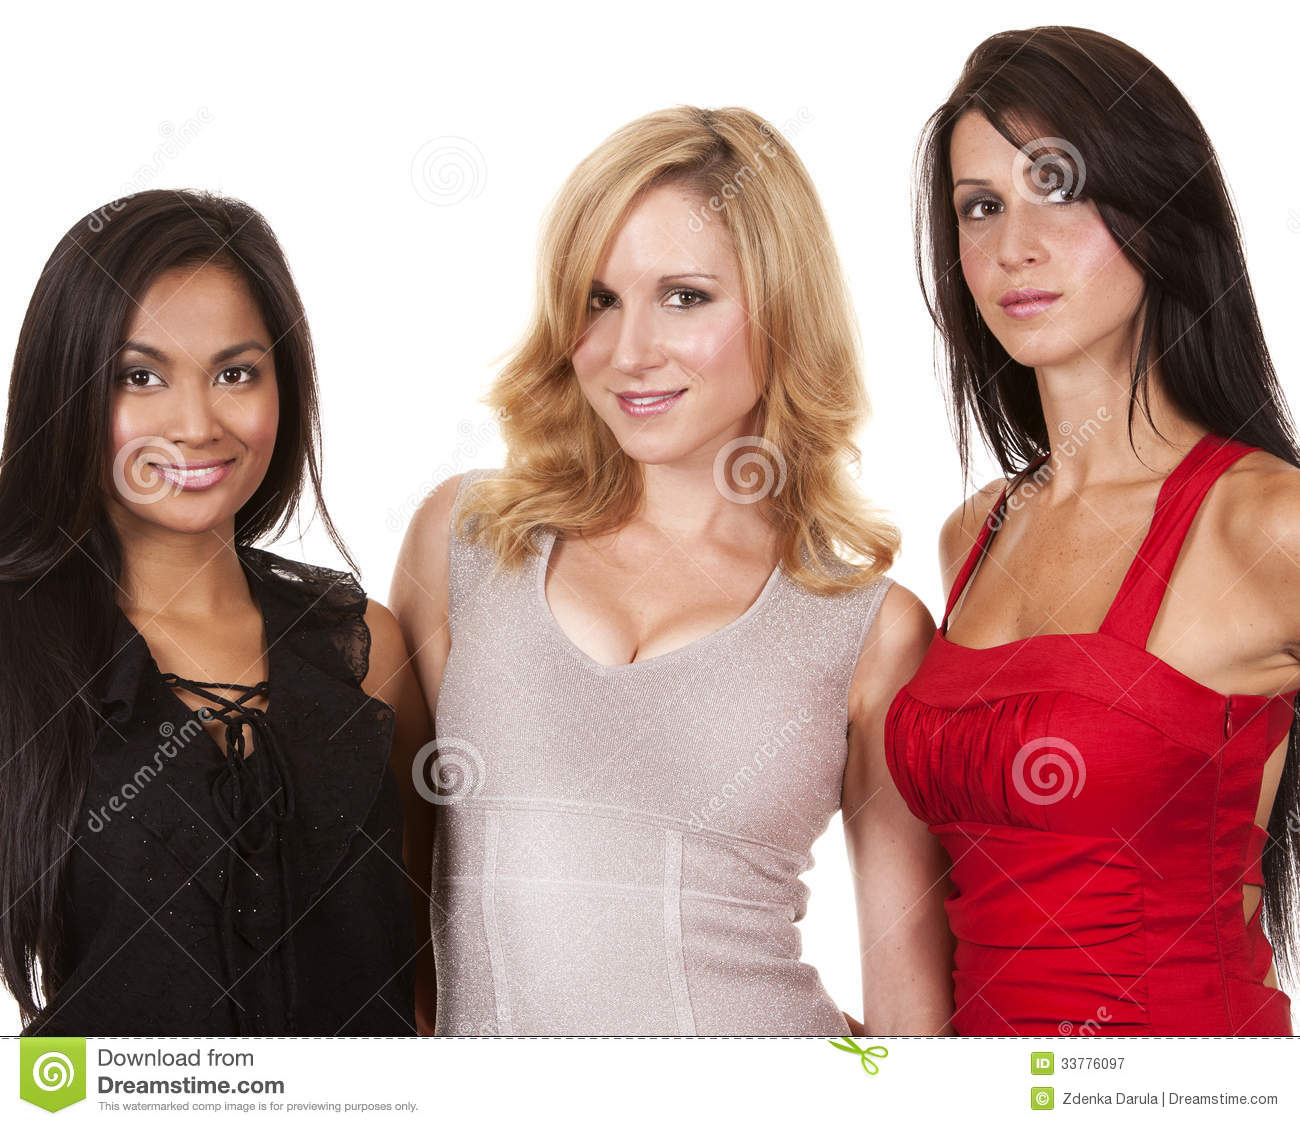 Classy And Glamorous Photo: Group Of Classy Women Stock Image. Image Of Occasion